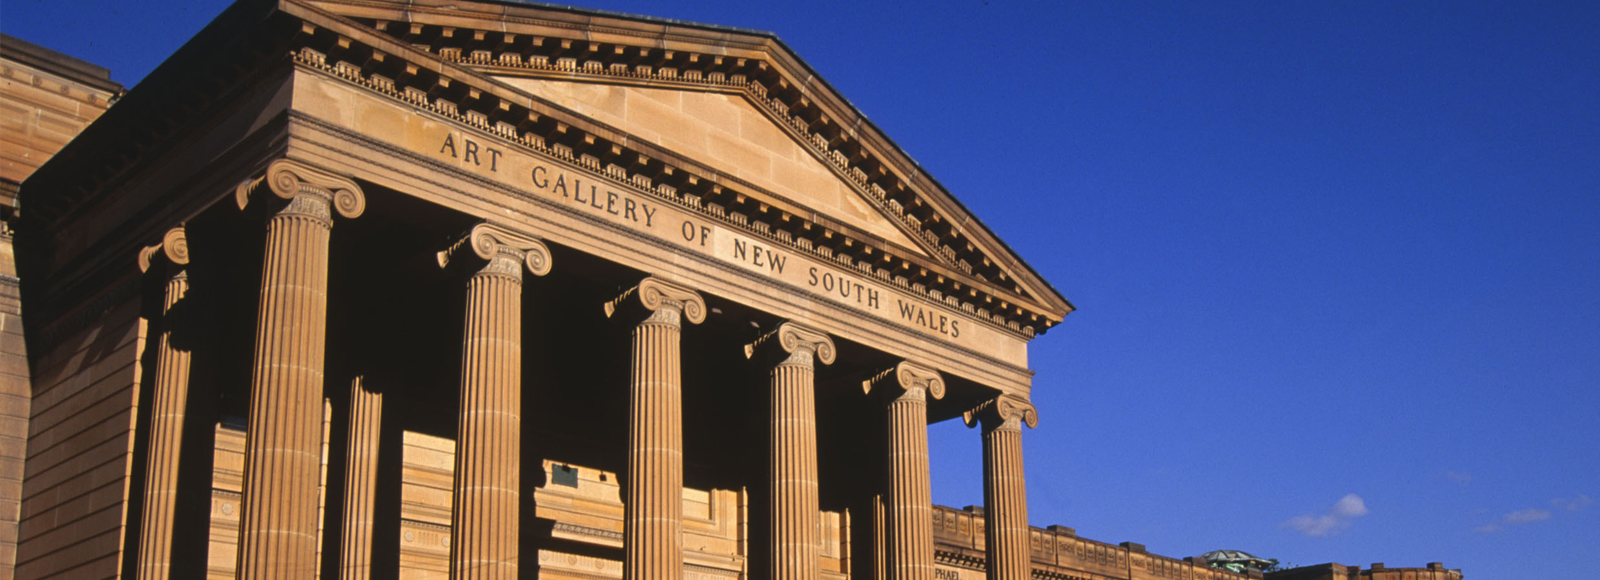 Art Gallery of New South Wales. Photo: Arts NSW